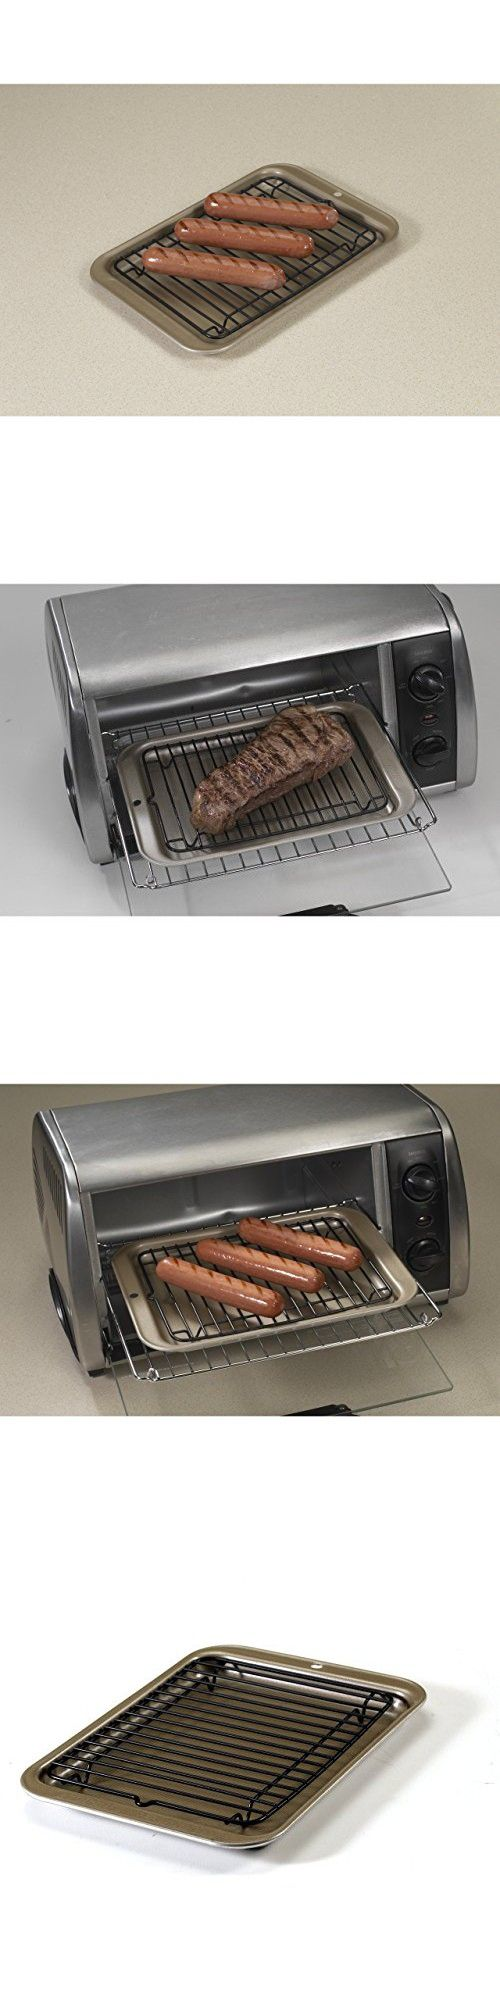 pinterest best cookware teamfar tray steel on pure ovenware stainless oven pan toaster images